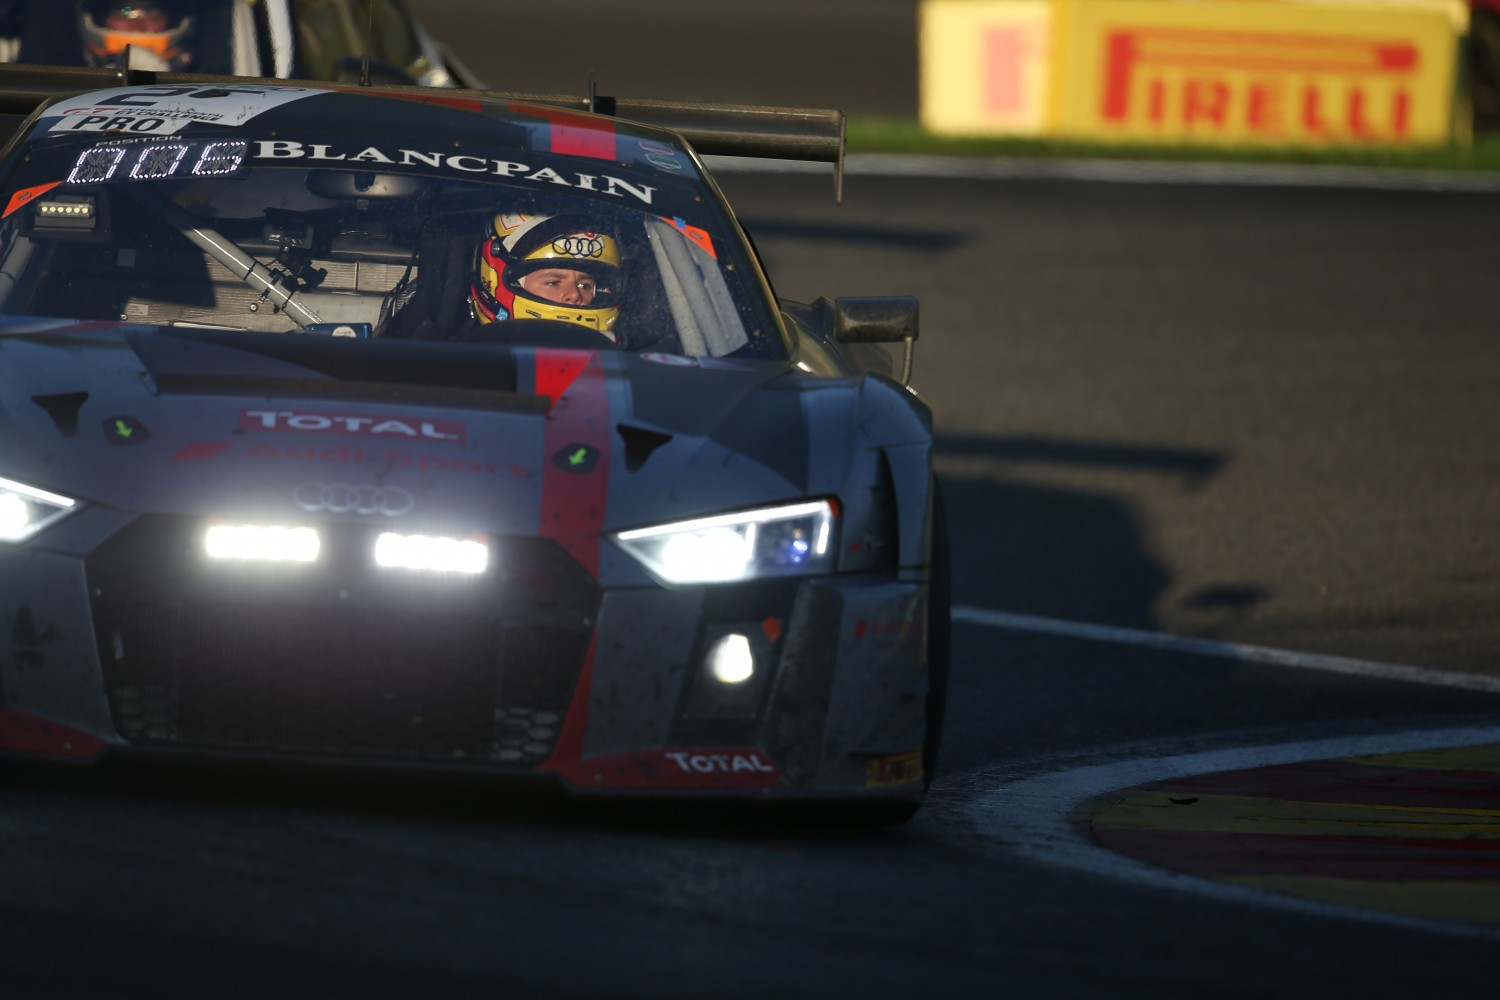 Audi takes its fourth win in Total 24 Hours of Spa